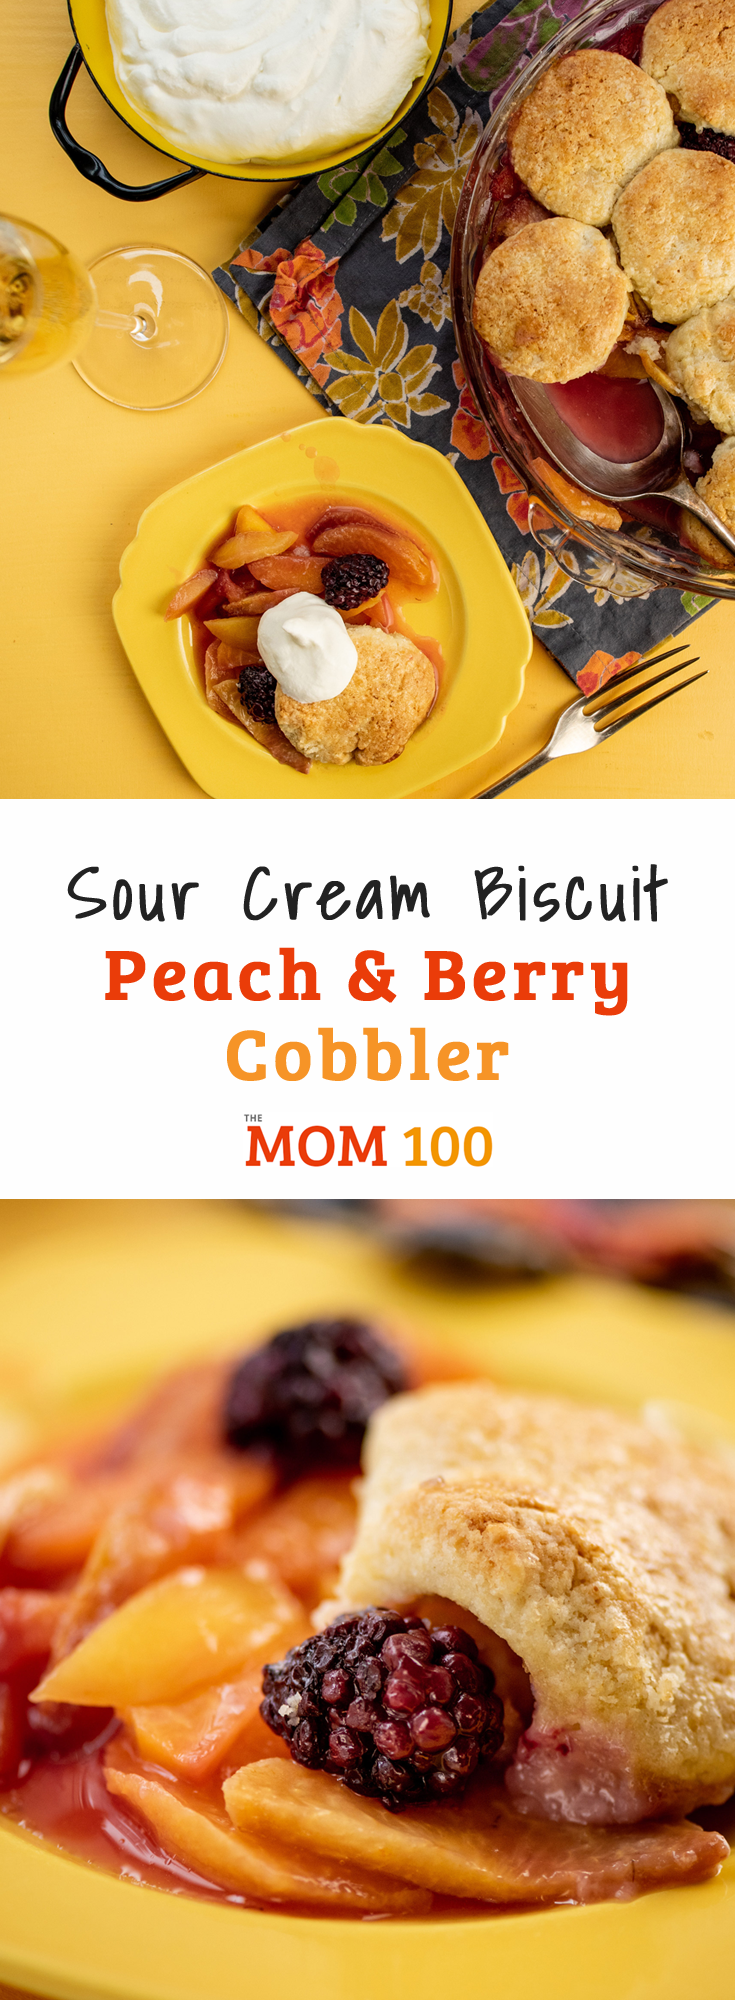 Sour Cream Biscuit Peach and Berry Cobbler: Served warm with ice cream or whipped cream, is one of the best summer desserts ever.